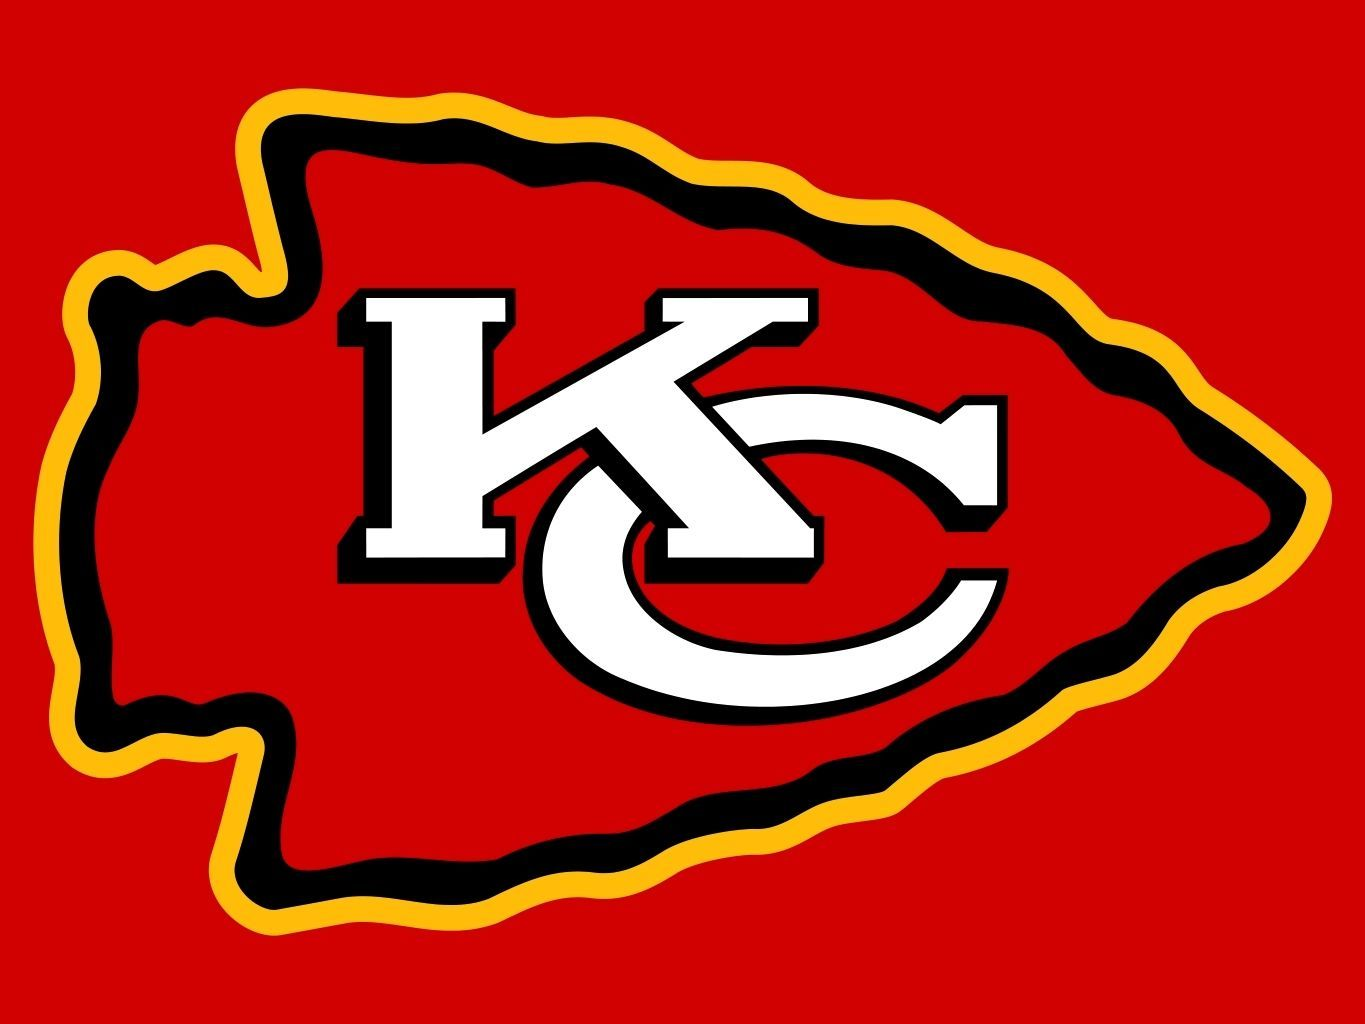 Kc Wallpapers 44 Wallpapers Hd Wallpapers Kansas City Chiefs Logo Chiefs Logo Kansas City Chiefs